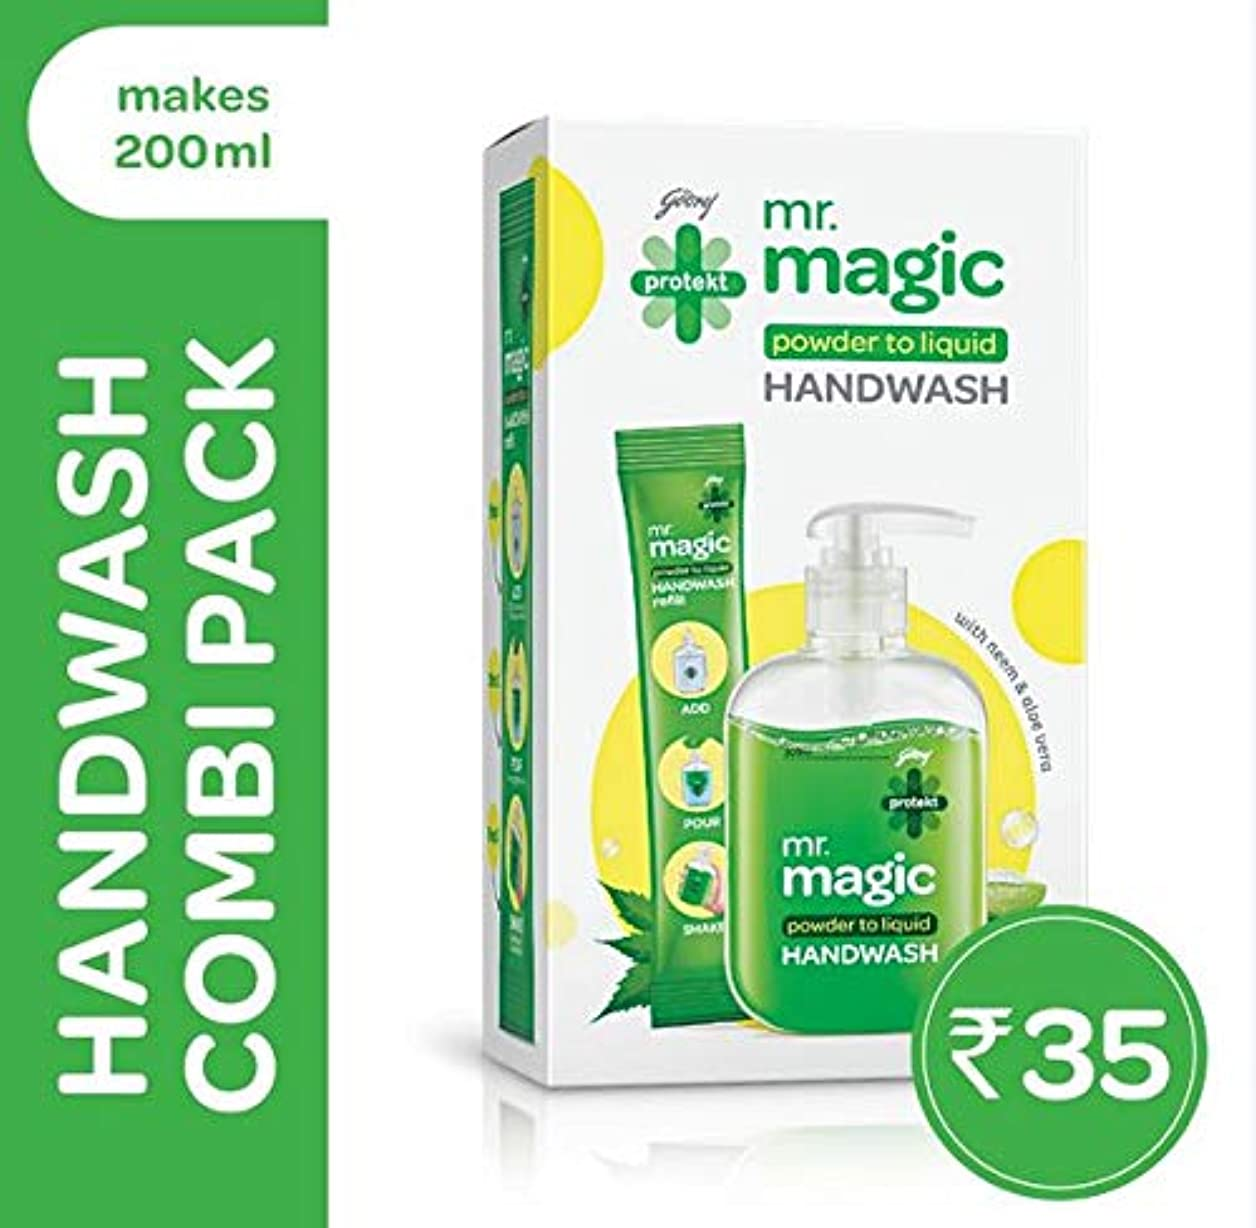 テレックス友だち途方もないGodrej Protekt Mr. Magic Handwash 9g (Pack of 2)